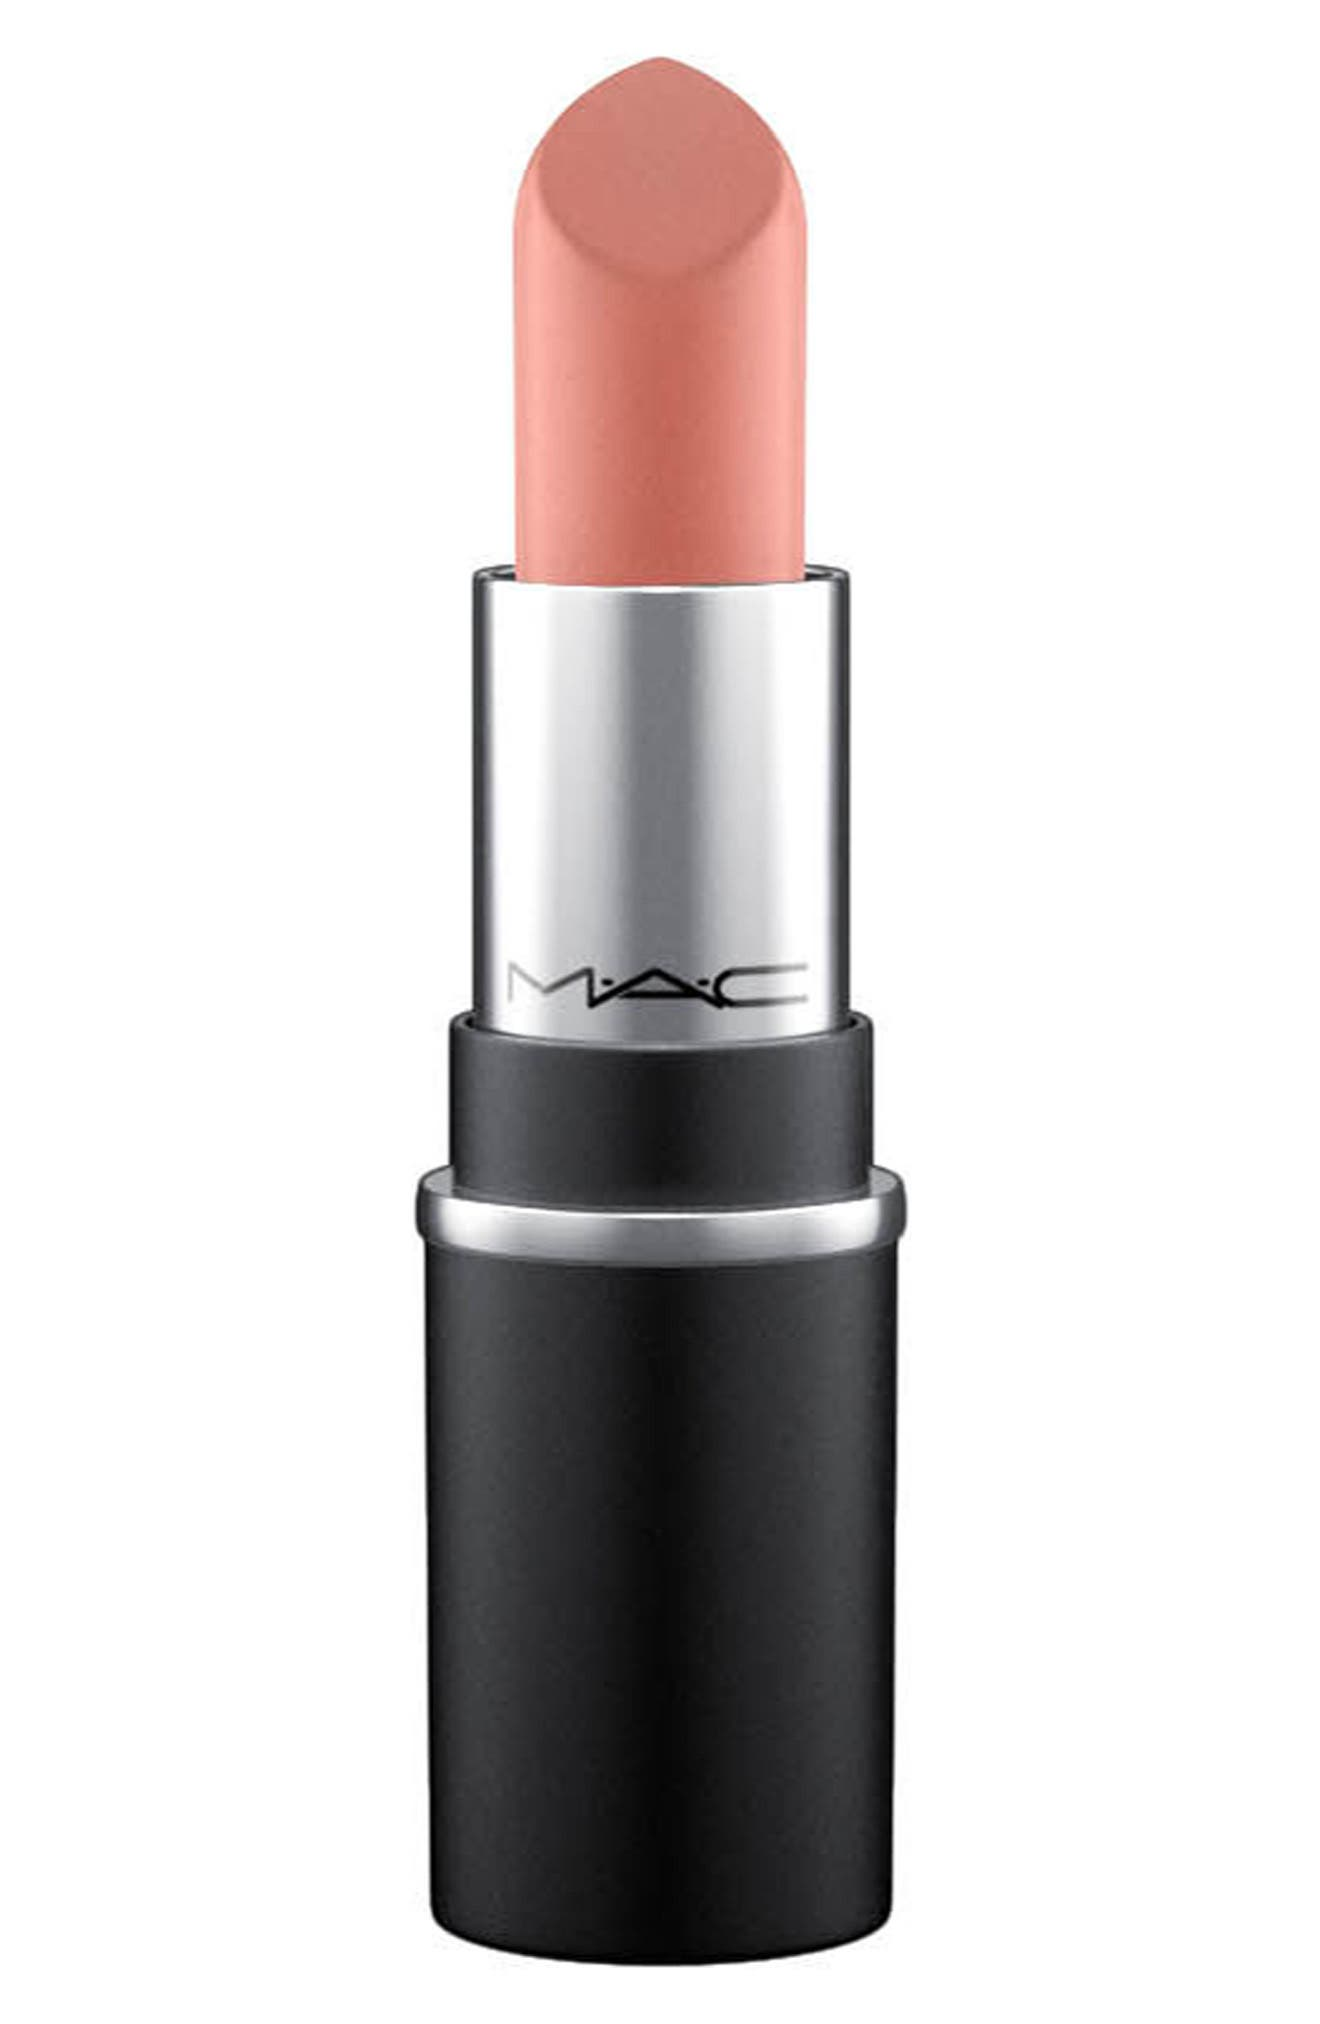 MAC COSMETICS MAC Mini MAC Lipstick, Main, color, VELVET TEDDY M